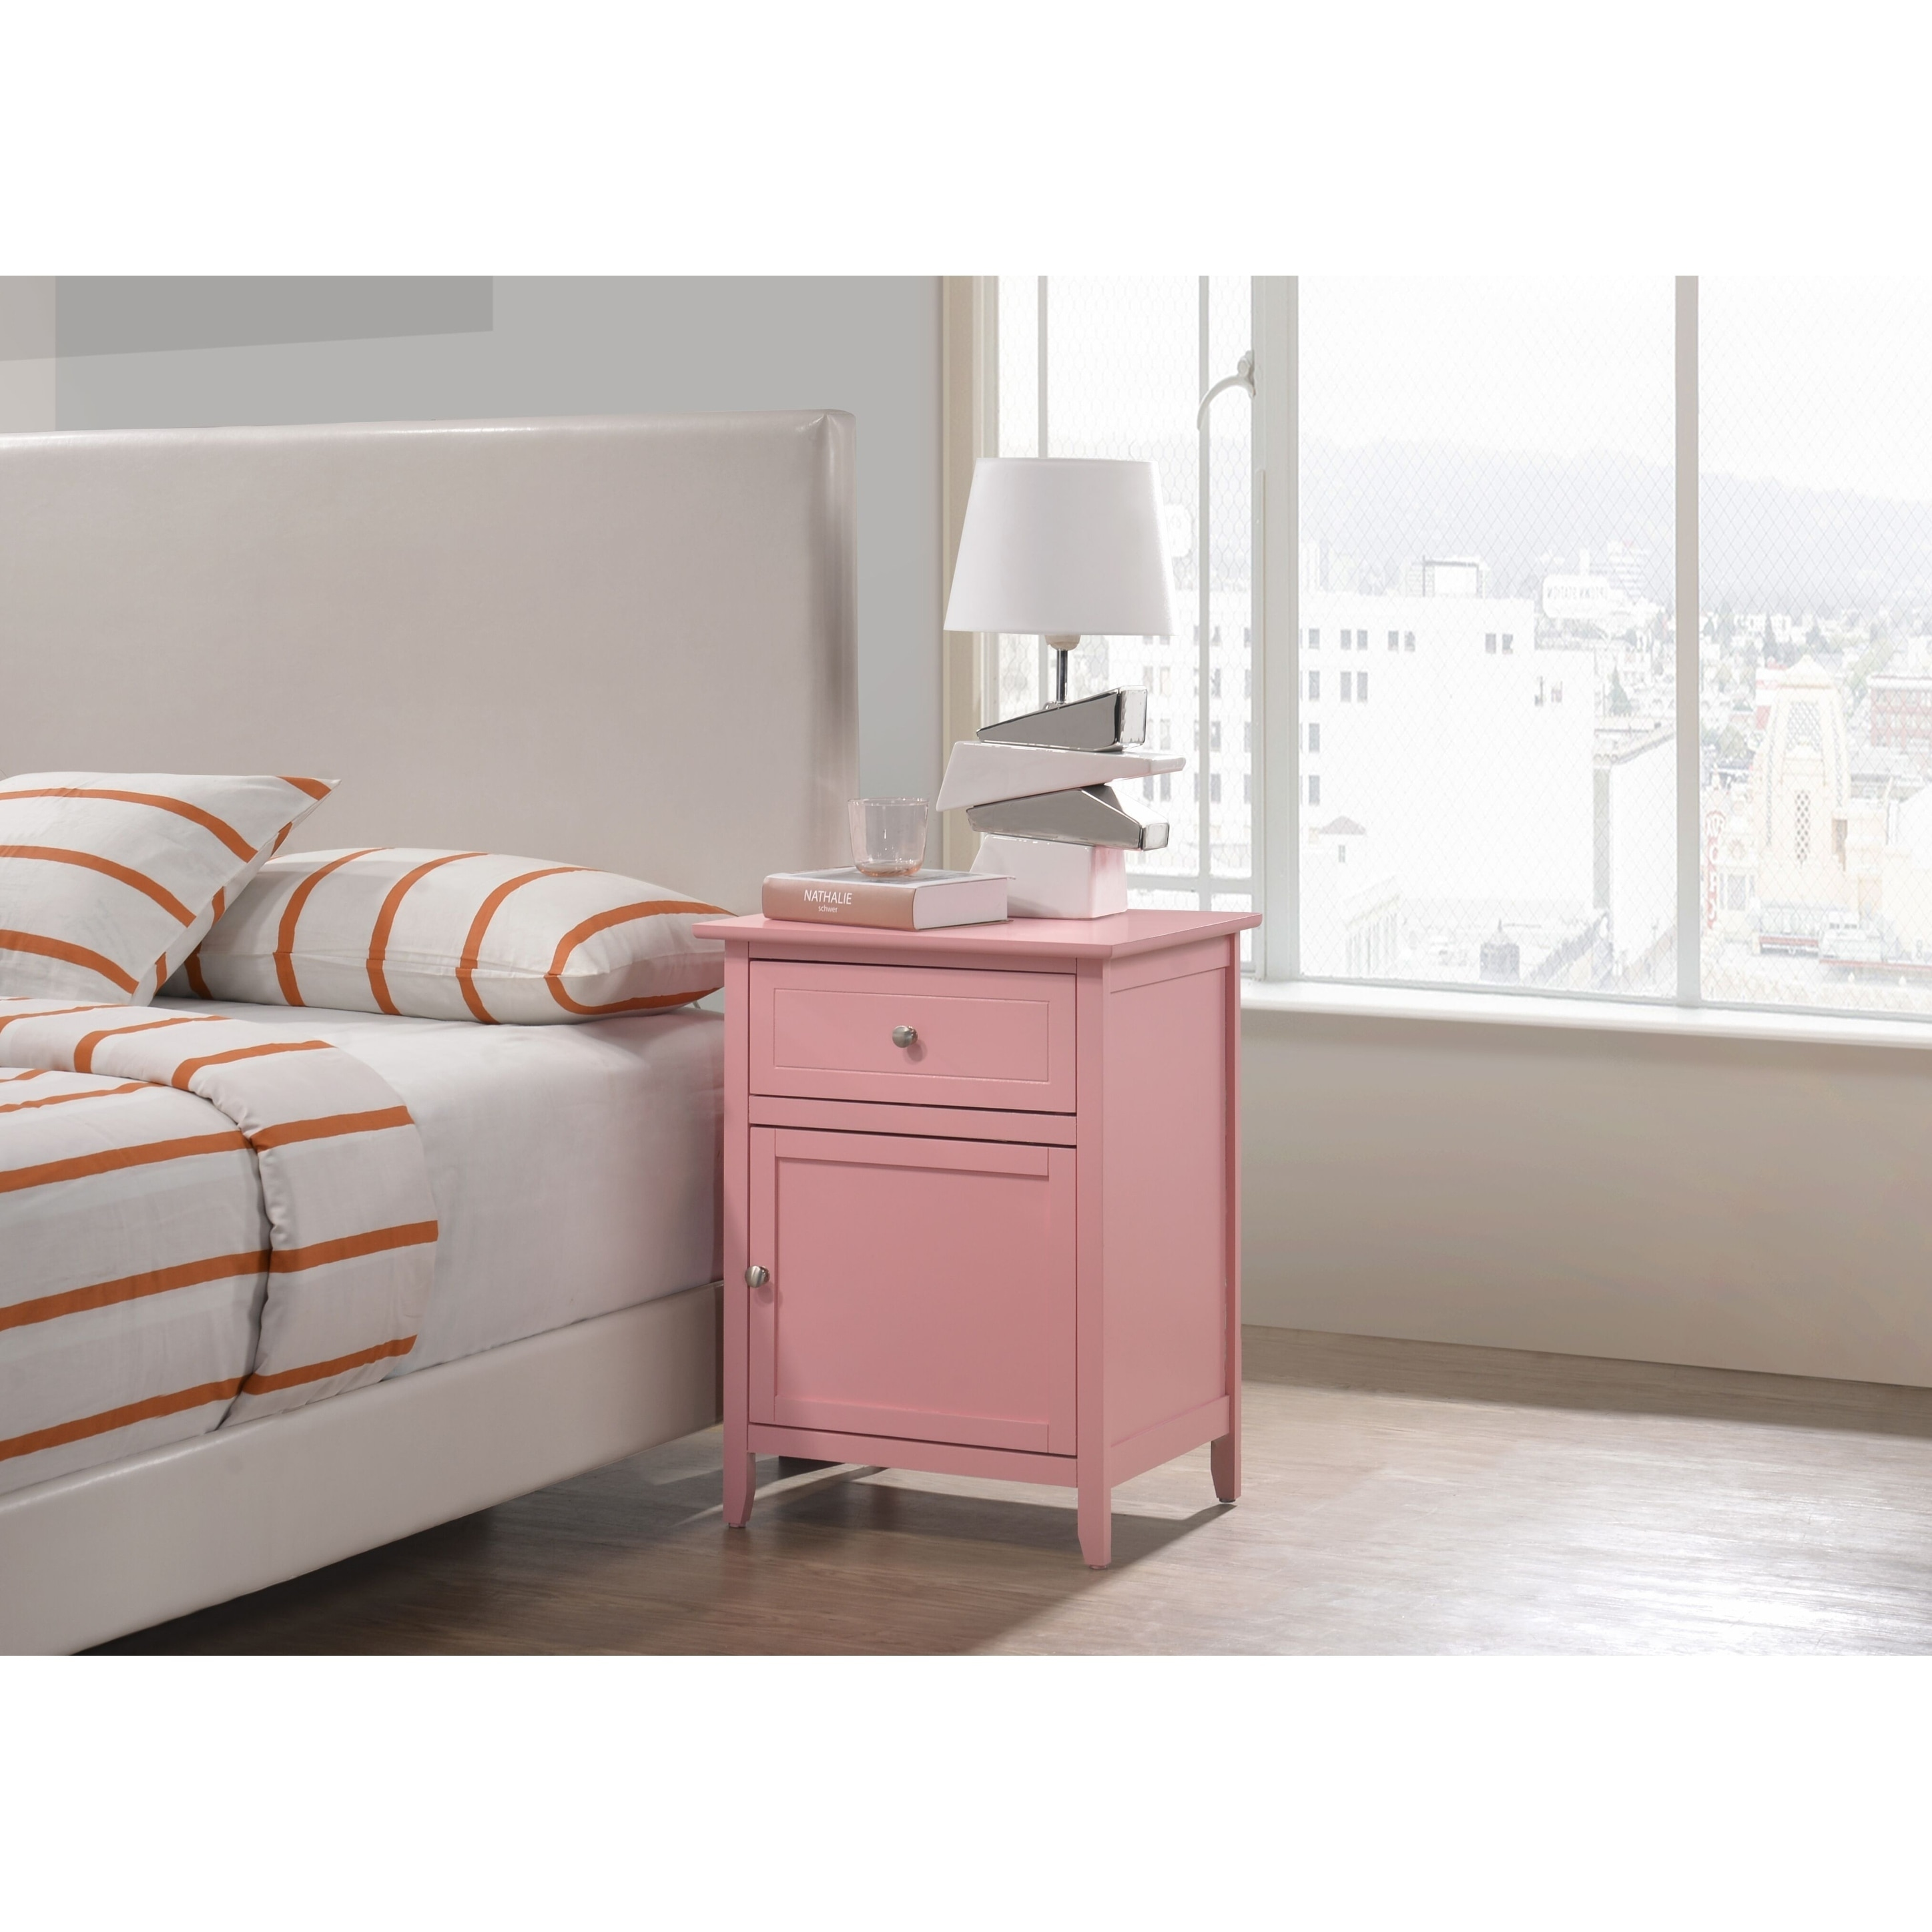 Izzy 1 Drawer And Cabinet Wooden Nightstand